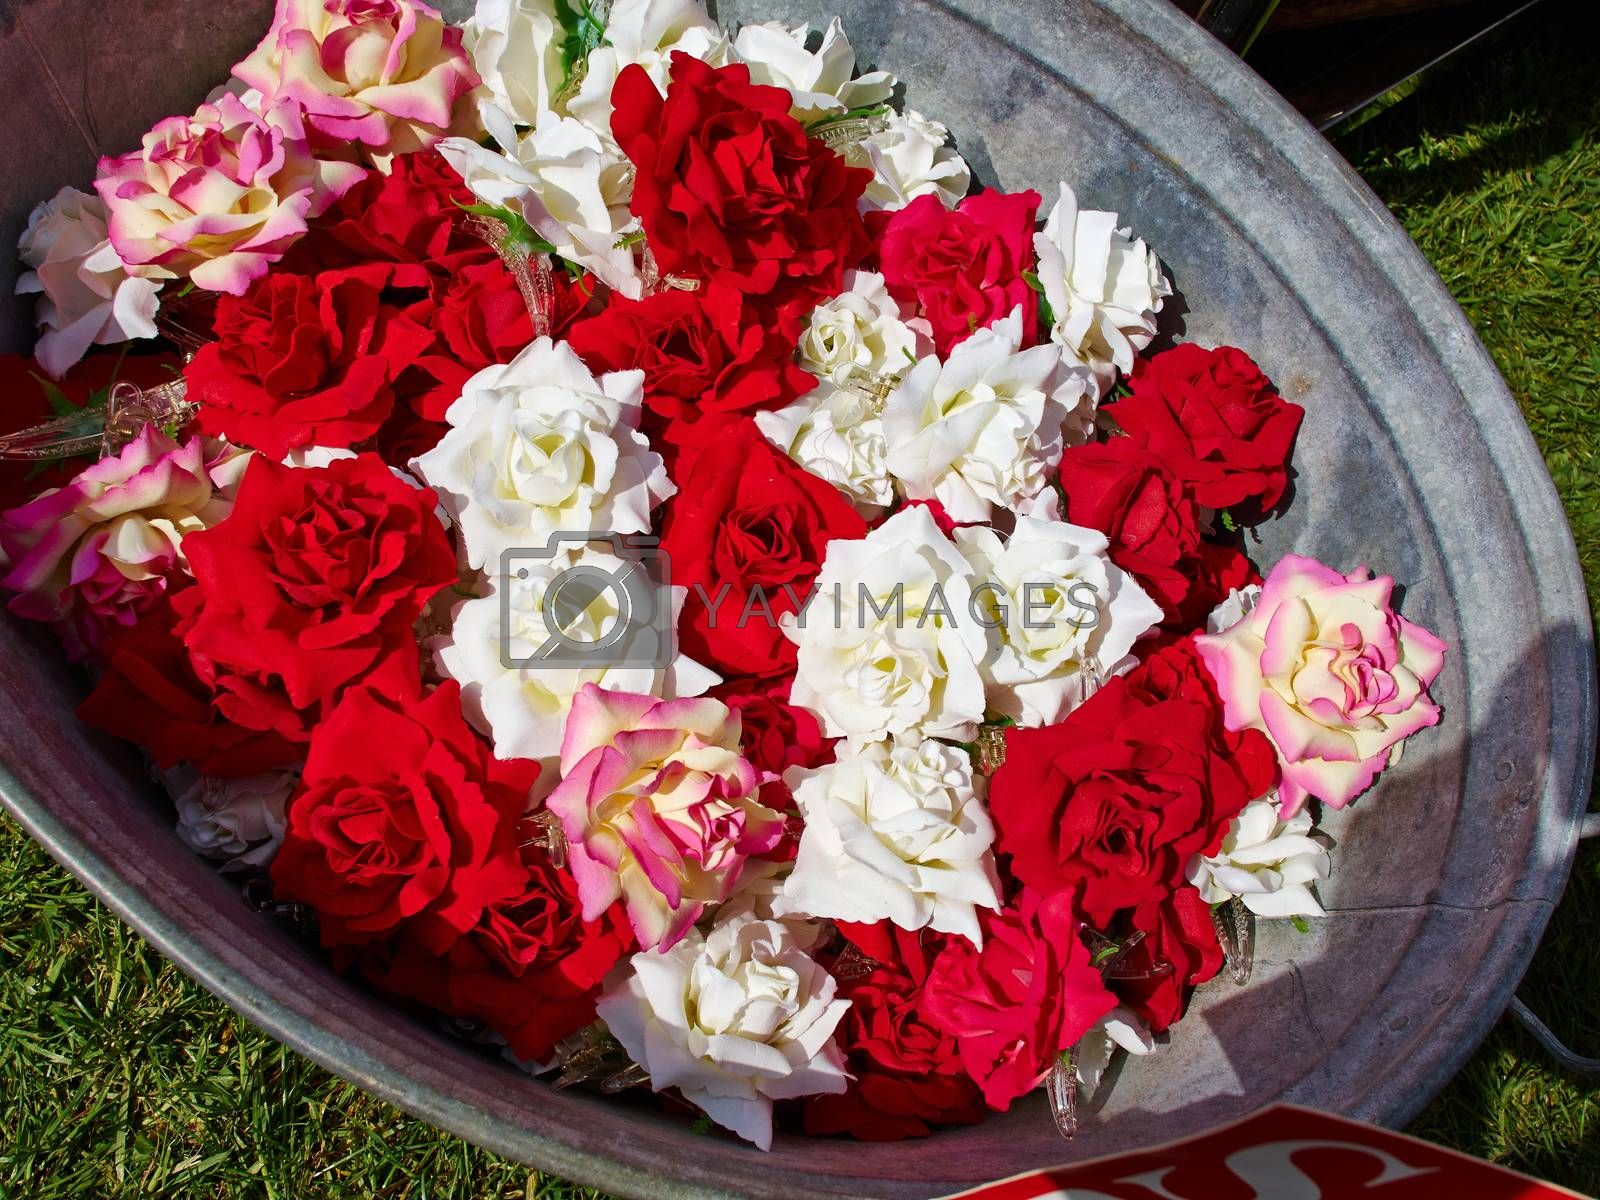 Artificial red and white roses blossom arranged in a tin container